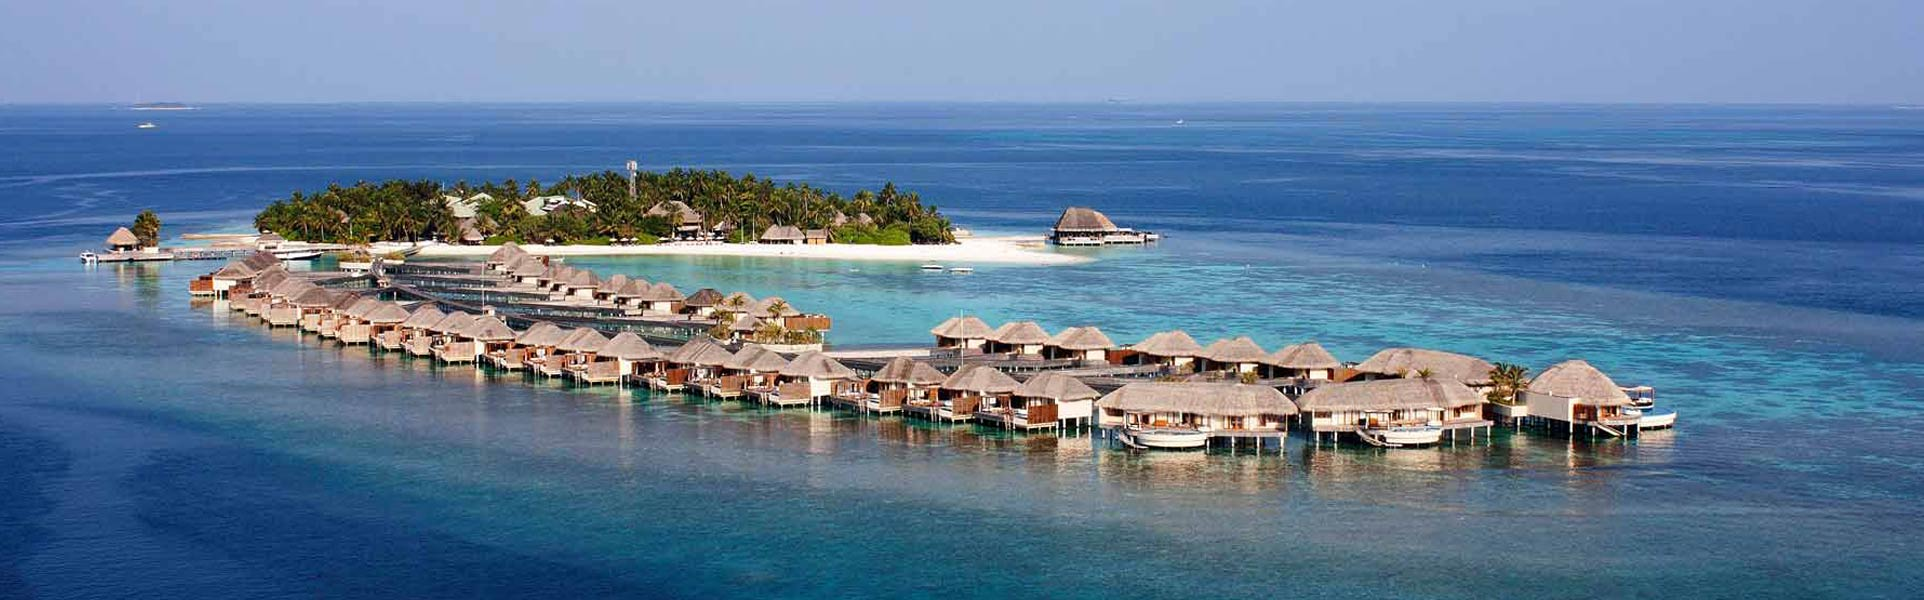 Maldives Tour From India